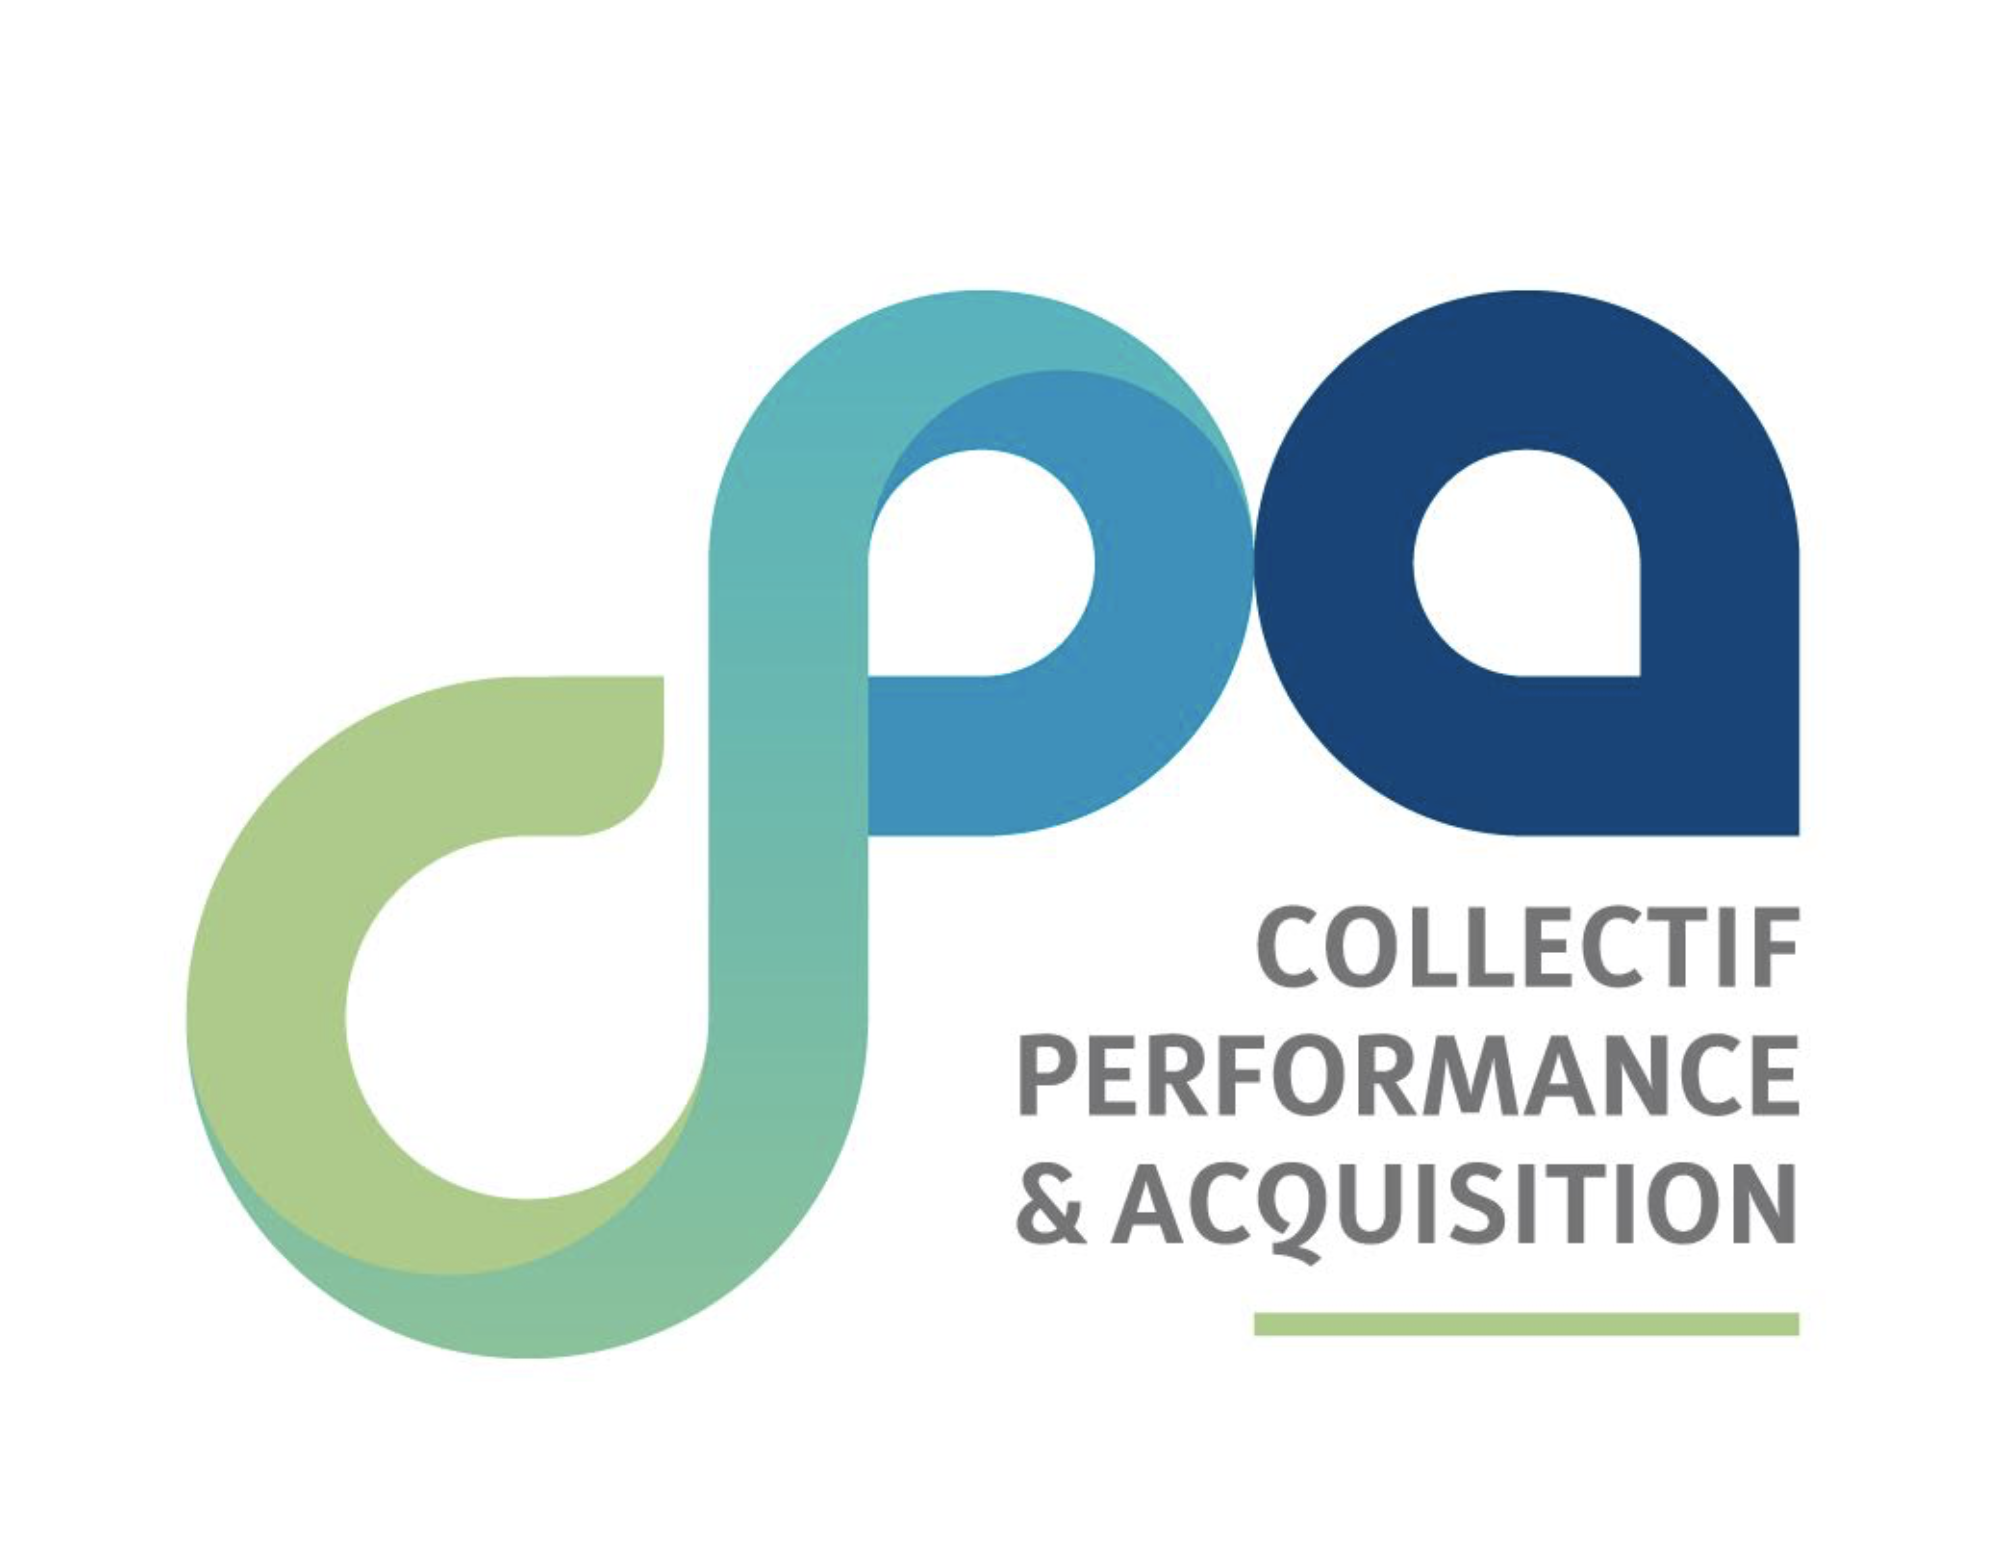 Collectif performance et acquisition